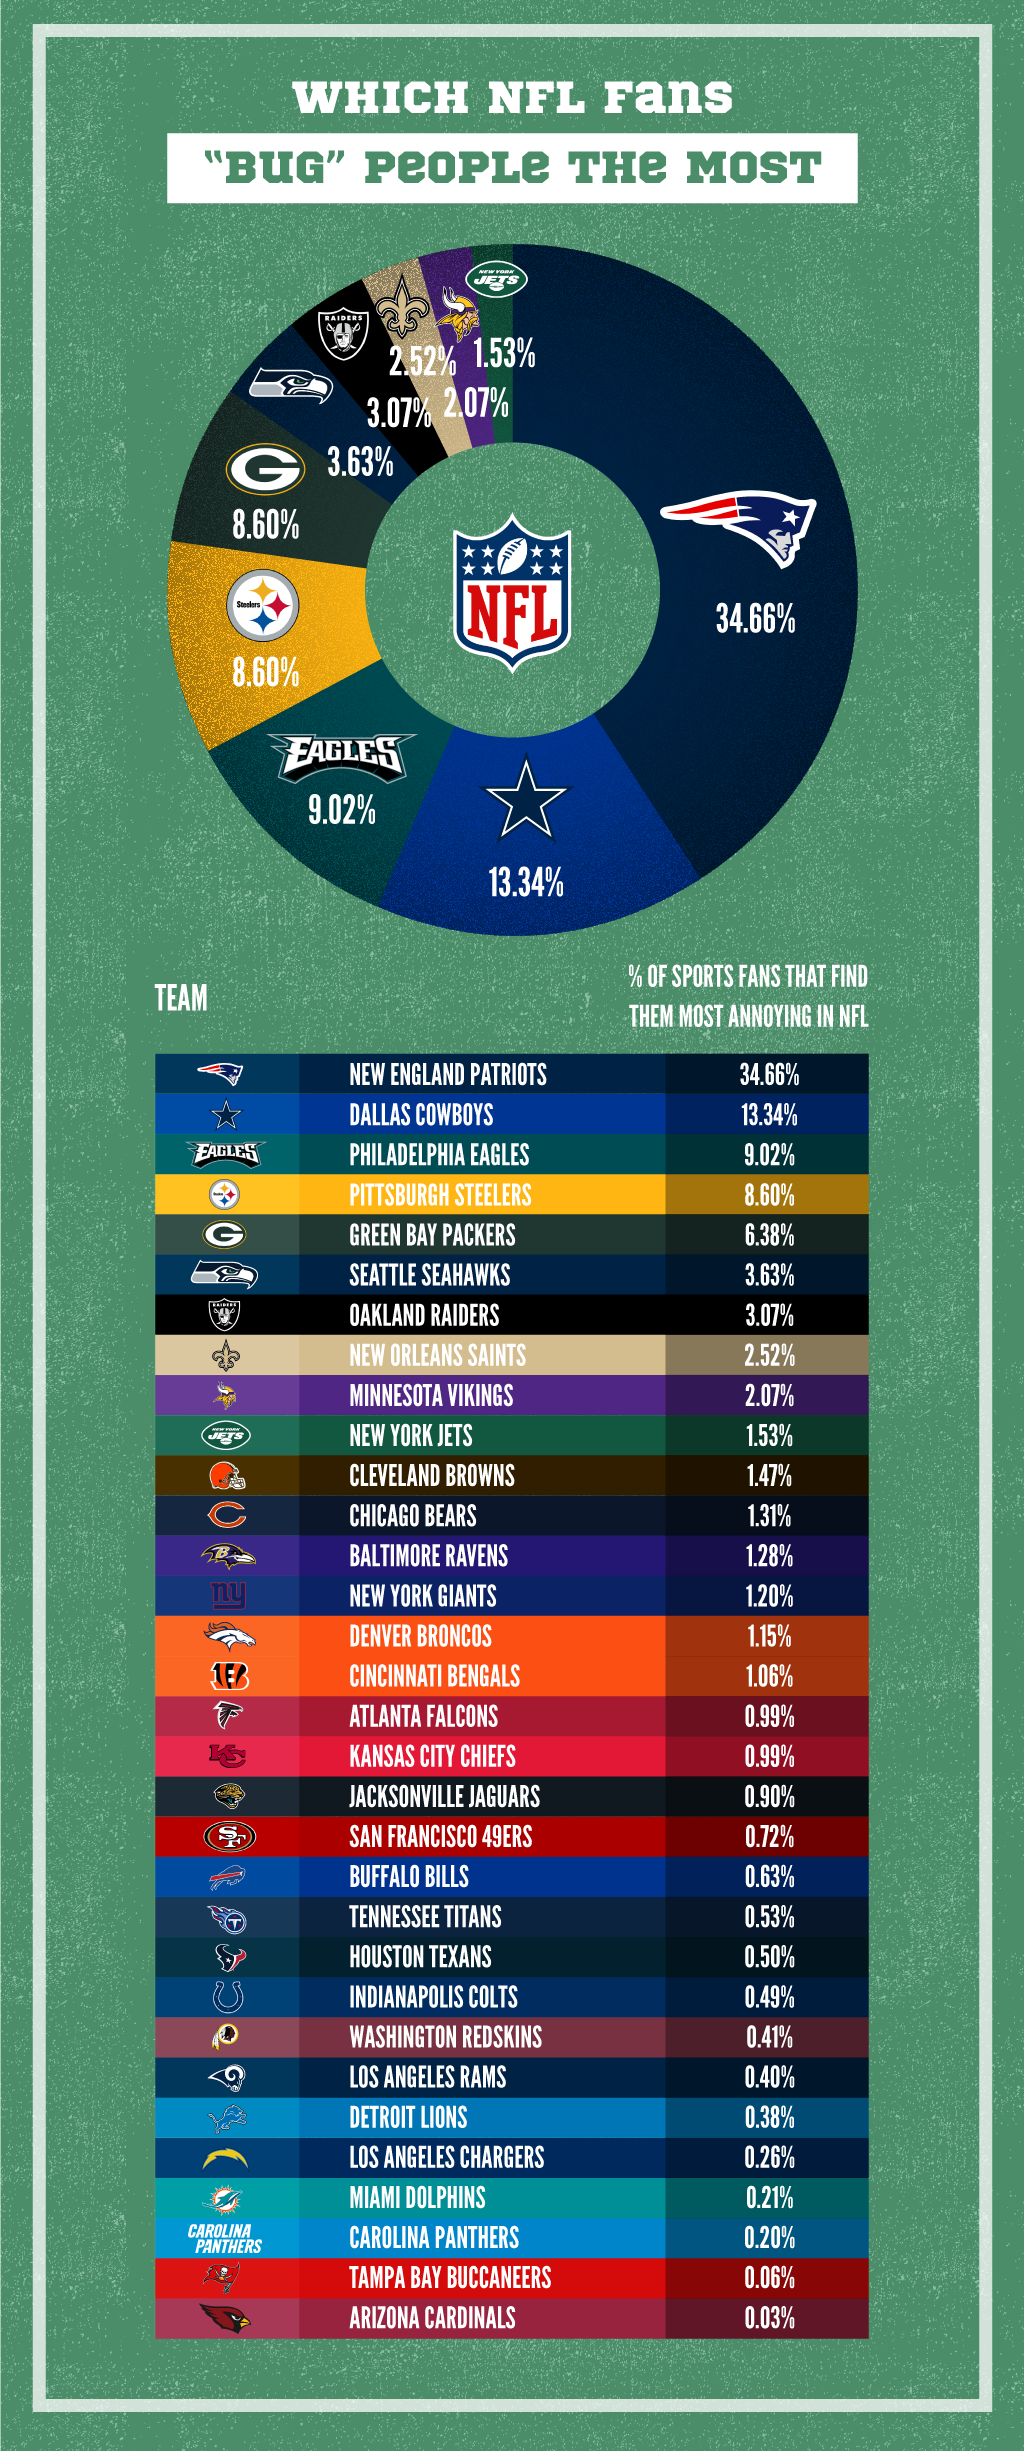 NFL Teams That Sports Fans Find Most Annoying